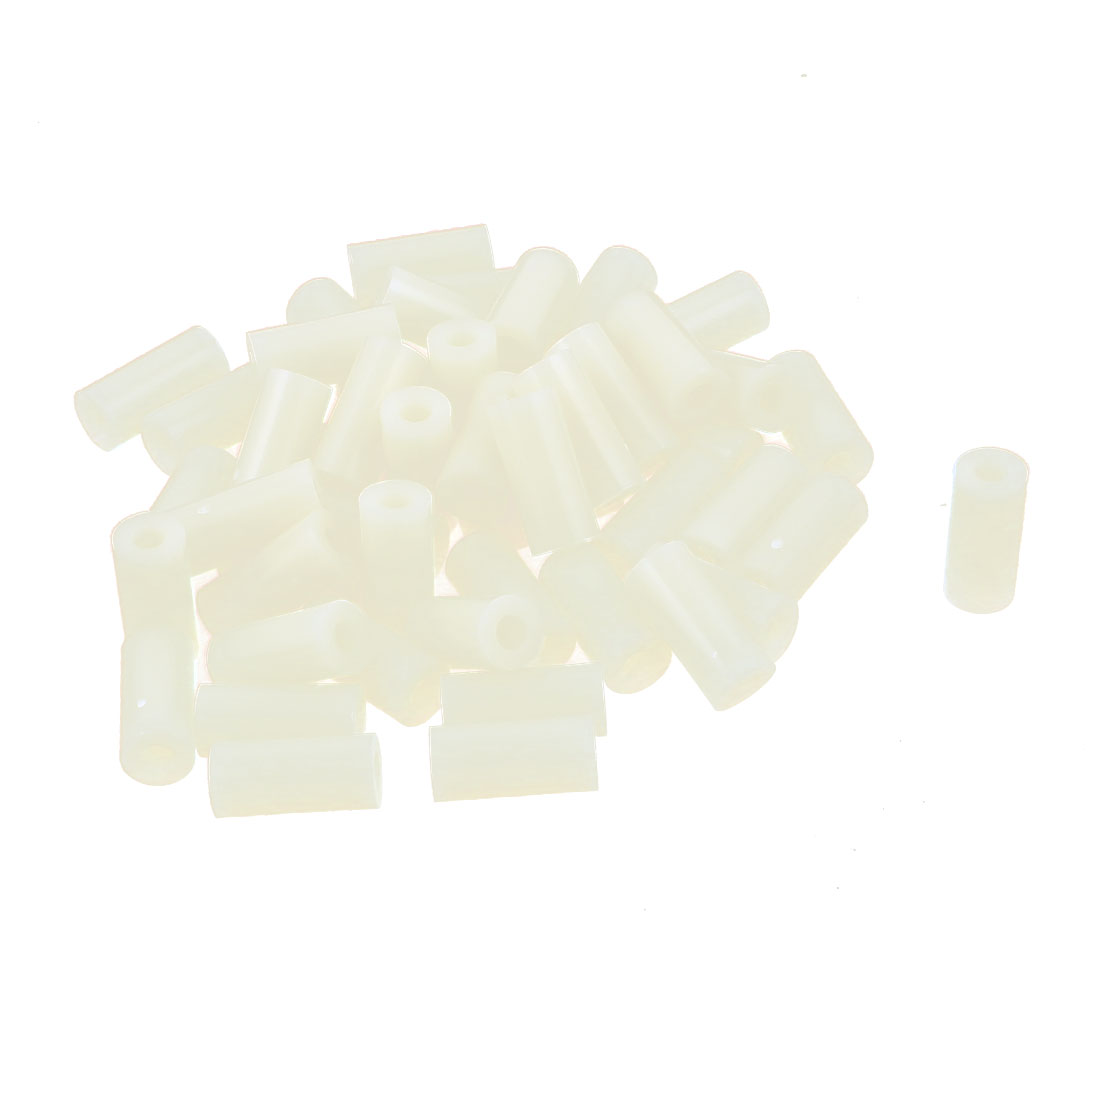 Plastic Cylinder Spacers Washers 7mm x 3.2mm x 15mm 50 Pcs Ivory